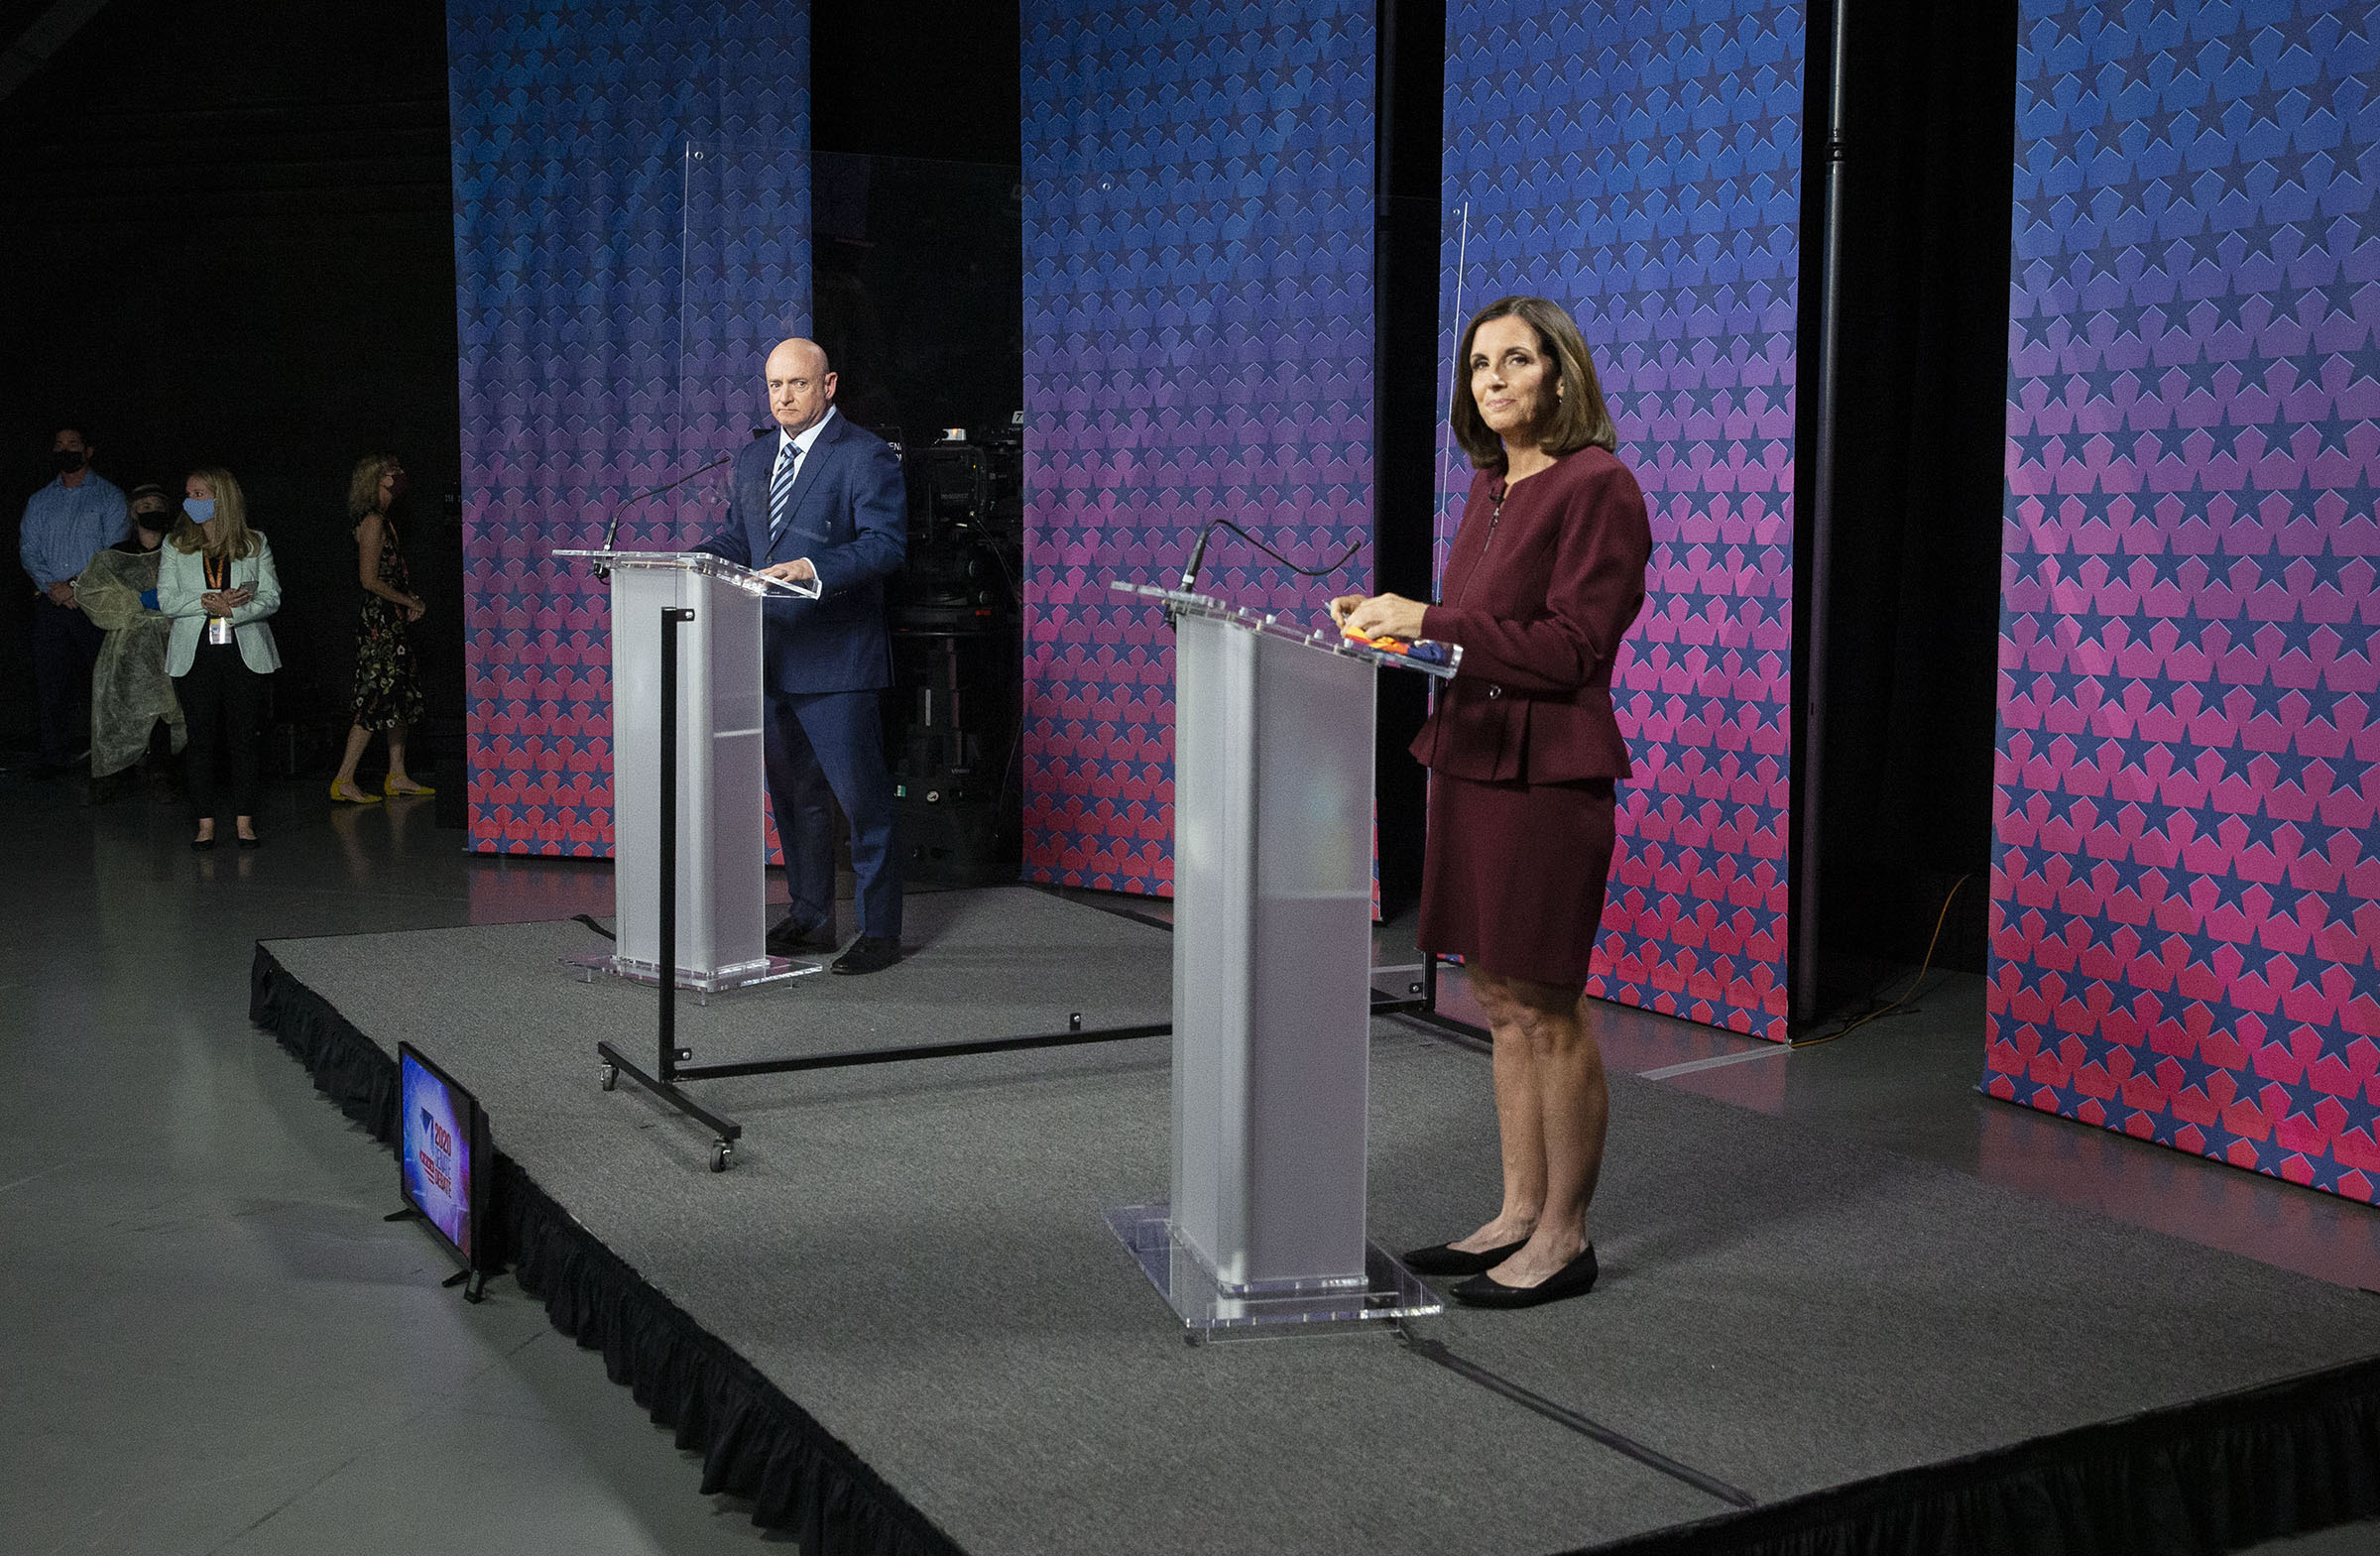 Democratic challenger Mark Kelly and U.S. Sen. Martha McSally, R-Ariz. are separated by plexiglass as they participate in a debate at Arizona State University in Phoenix, AZ on Oct. 6, 2020.